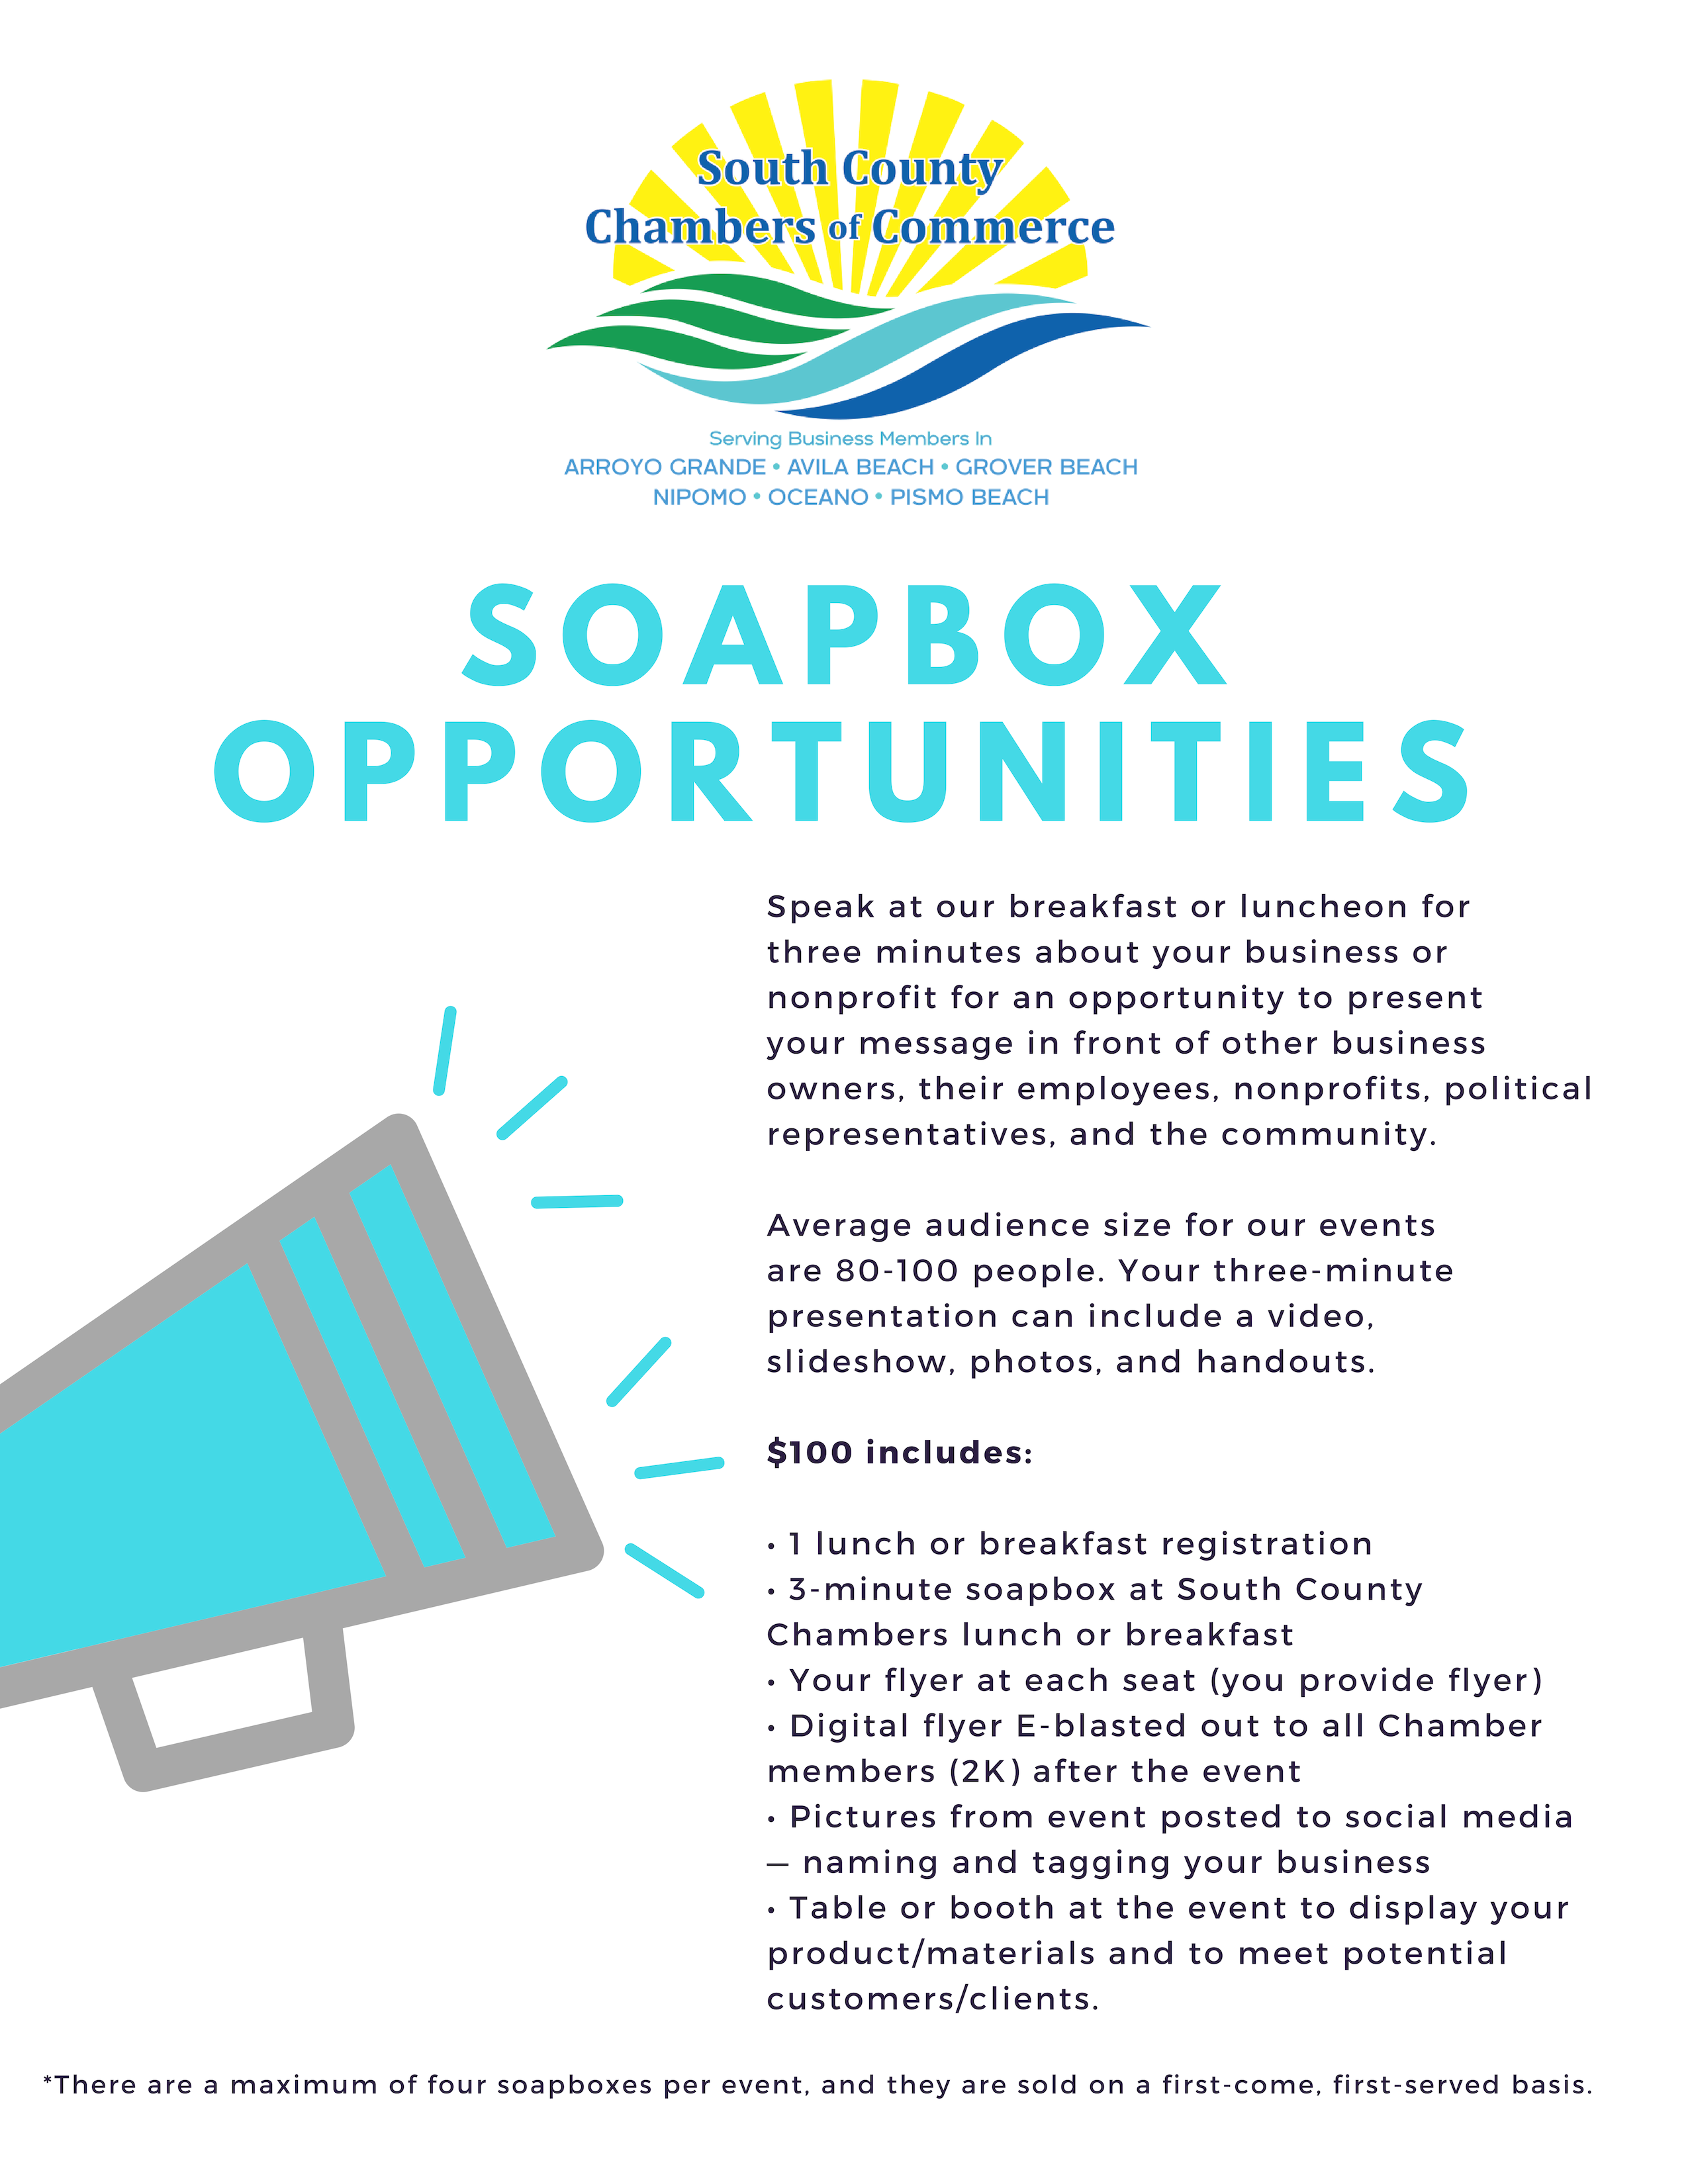 January 2019 Newsletter - South County Chambers of Commerce, CA